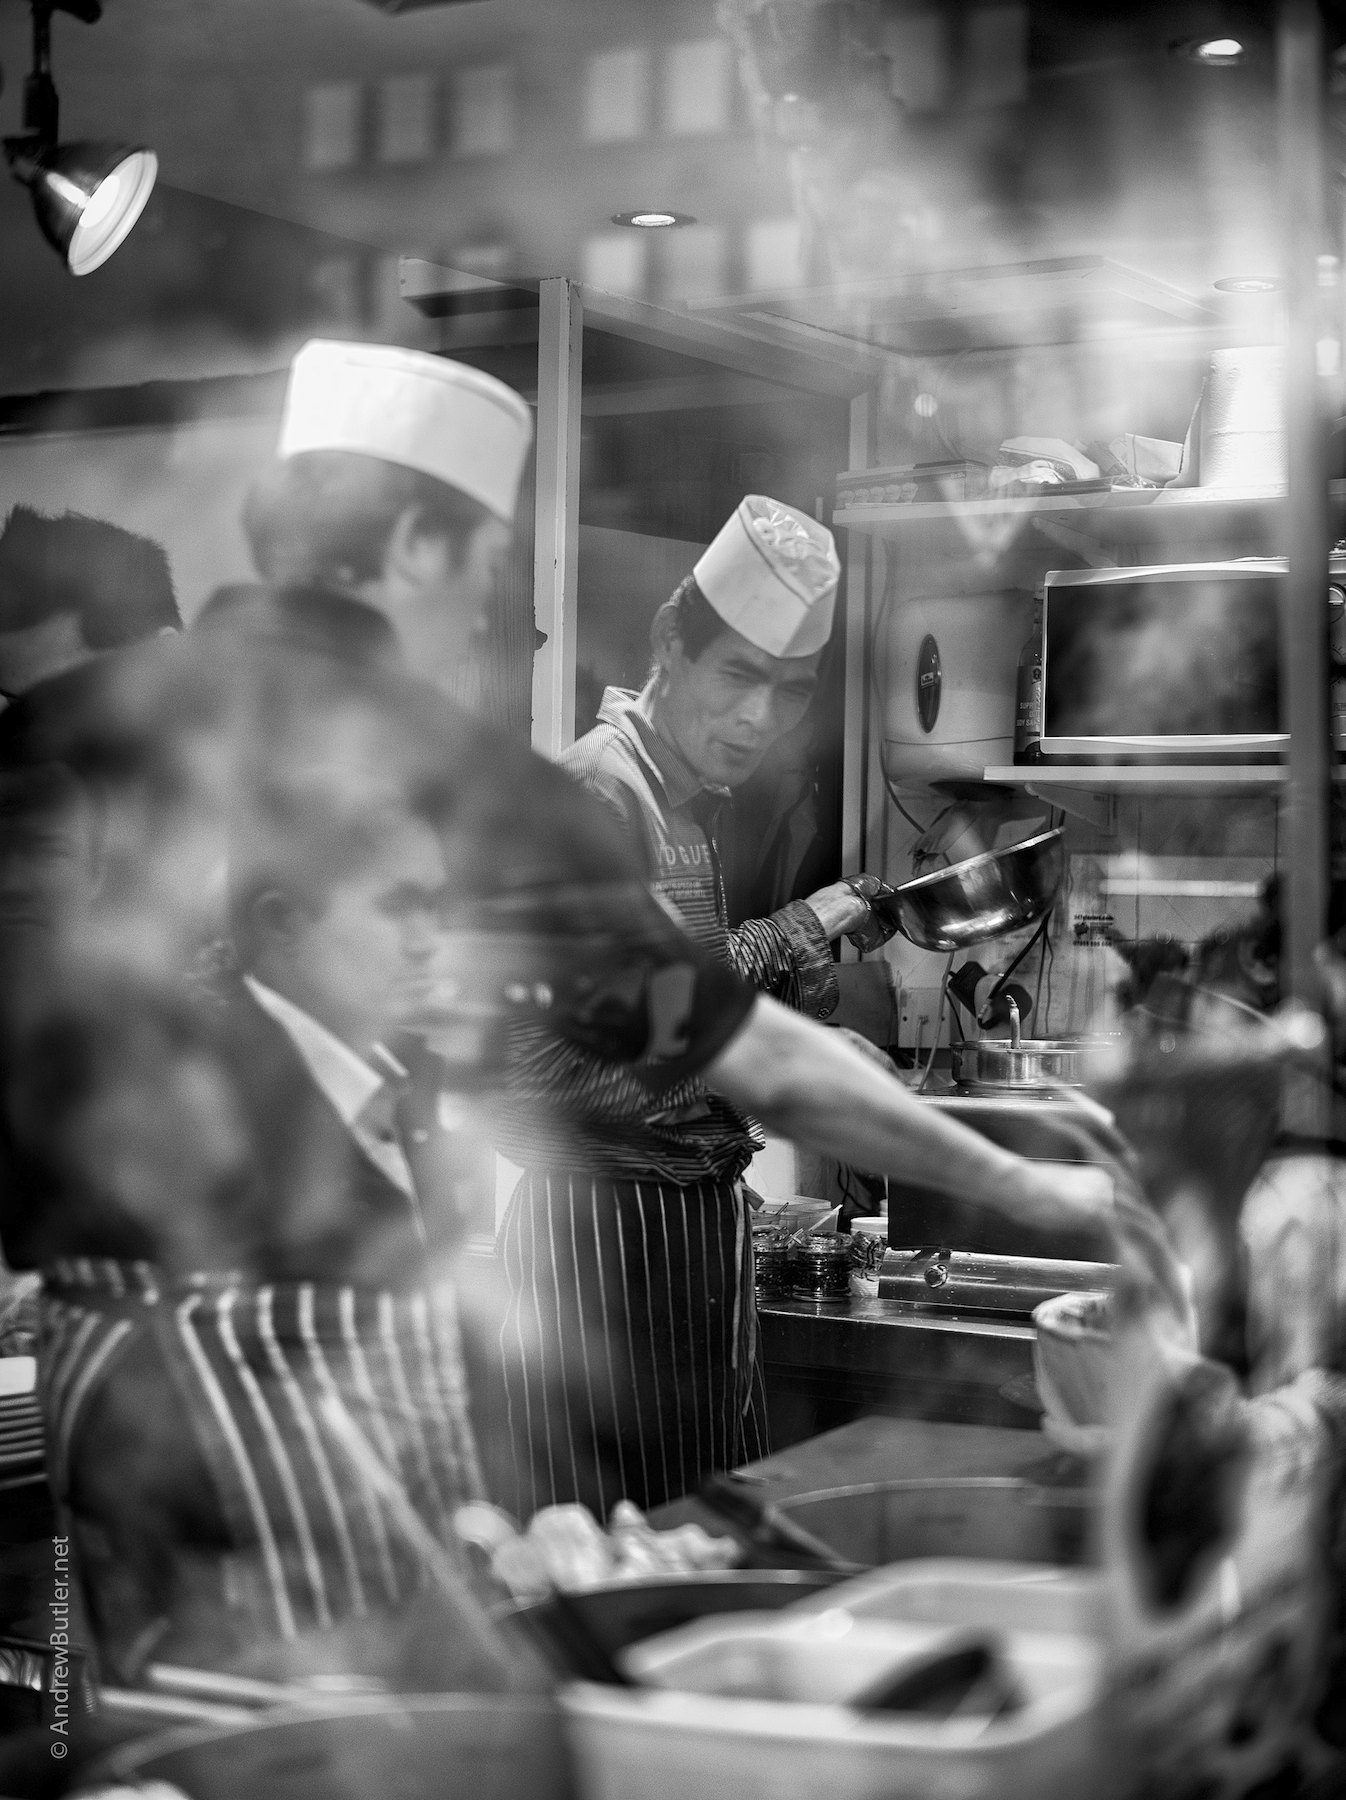 Black and White portrait photograph of Chinatown Cooks by Andrew Butler (Exeter)